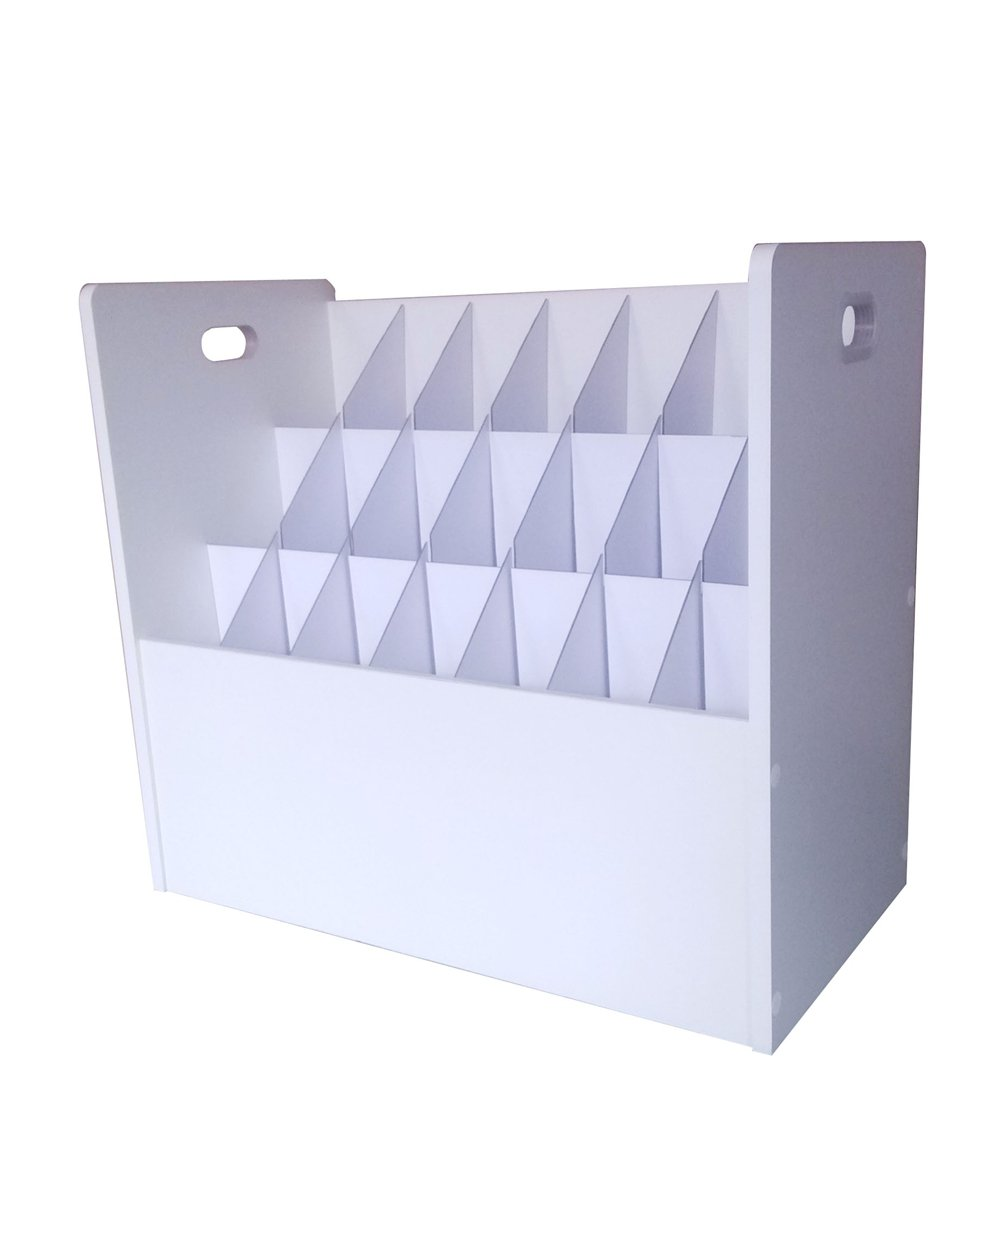 Fixture Displays 21 compartments file organizer15126 15126!